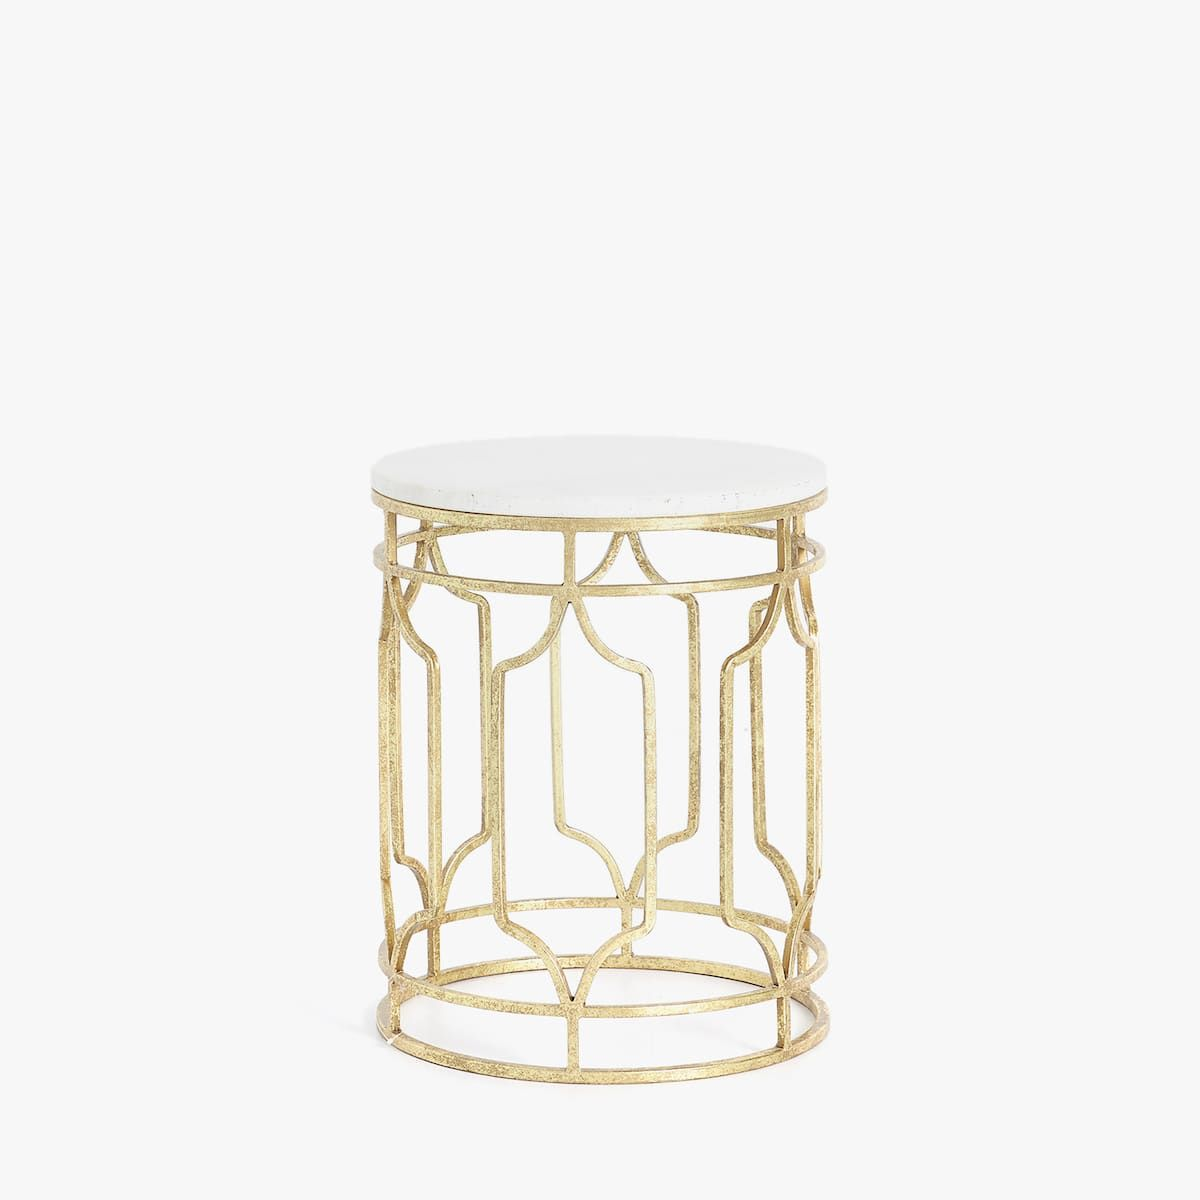 Image 1 Of The Product Marble Table With Gold Structure Marble Table Zara Home Marble Table Side Table